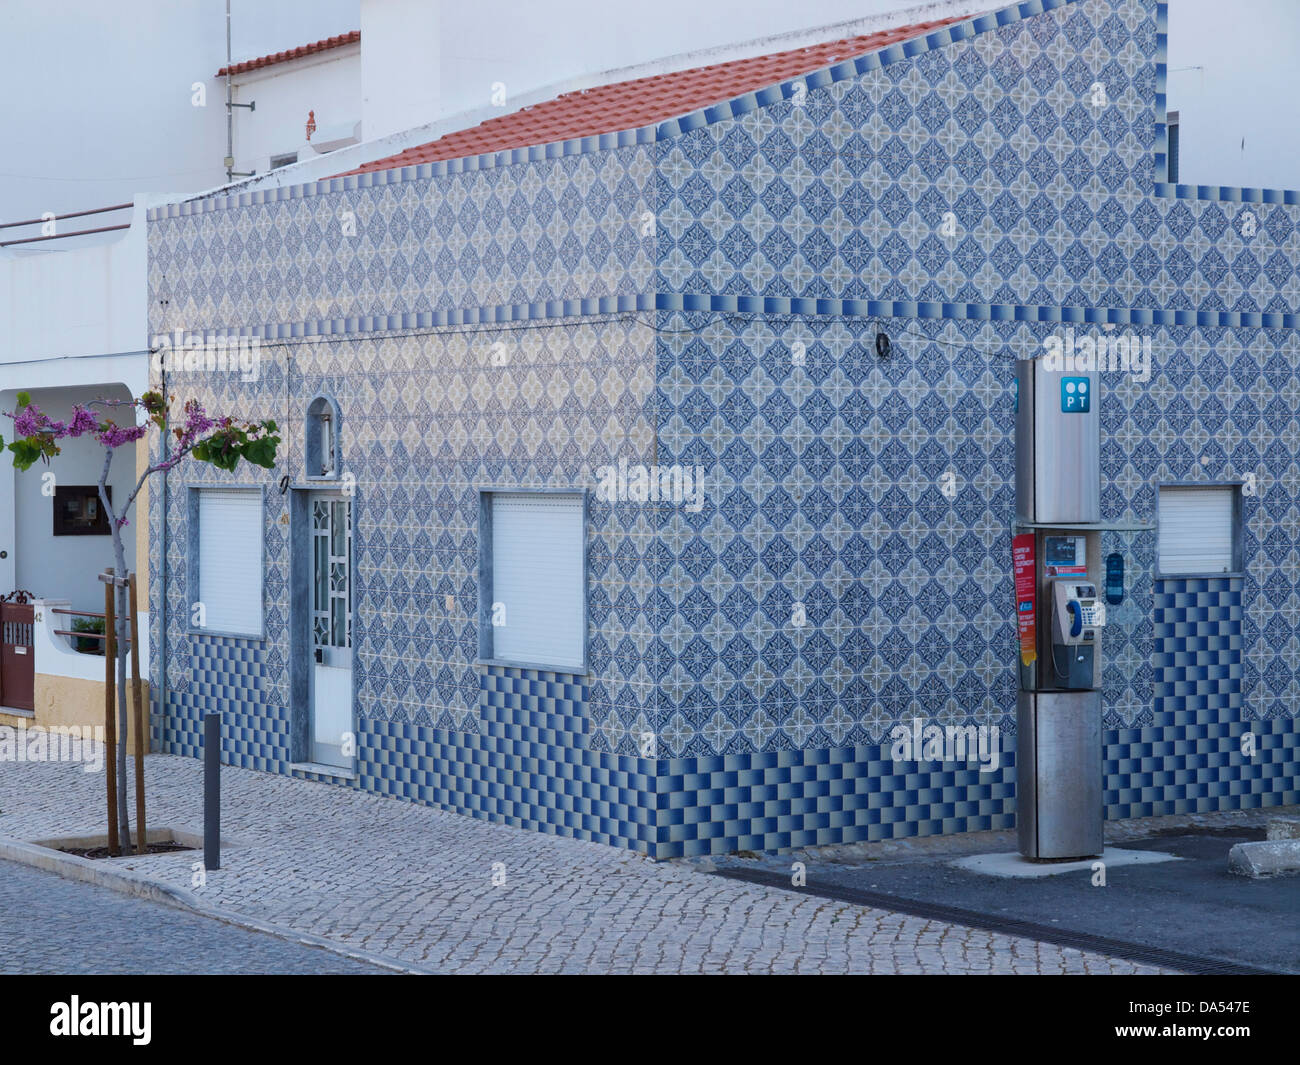 modern house completely clad in traditional azulejos tiles in Cabanas de Tavira, Algarve, Portugal - Stock Image